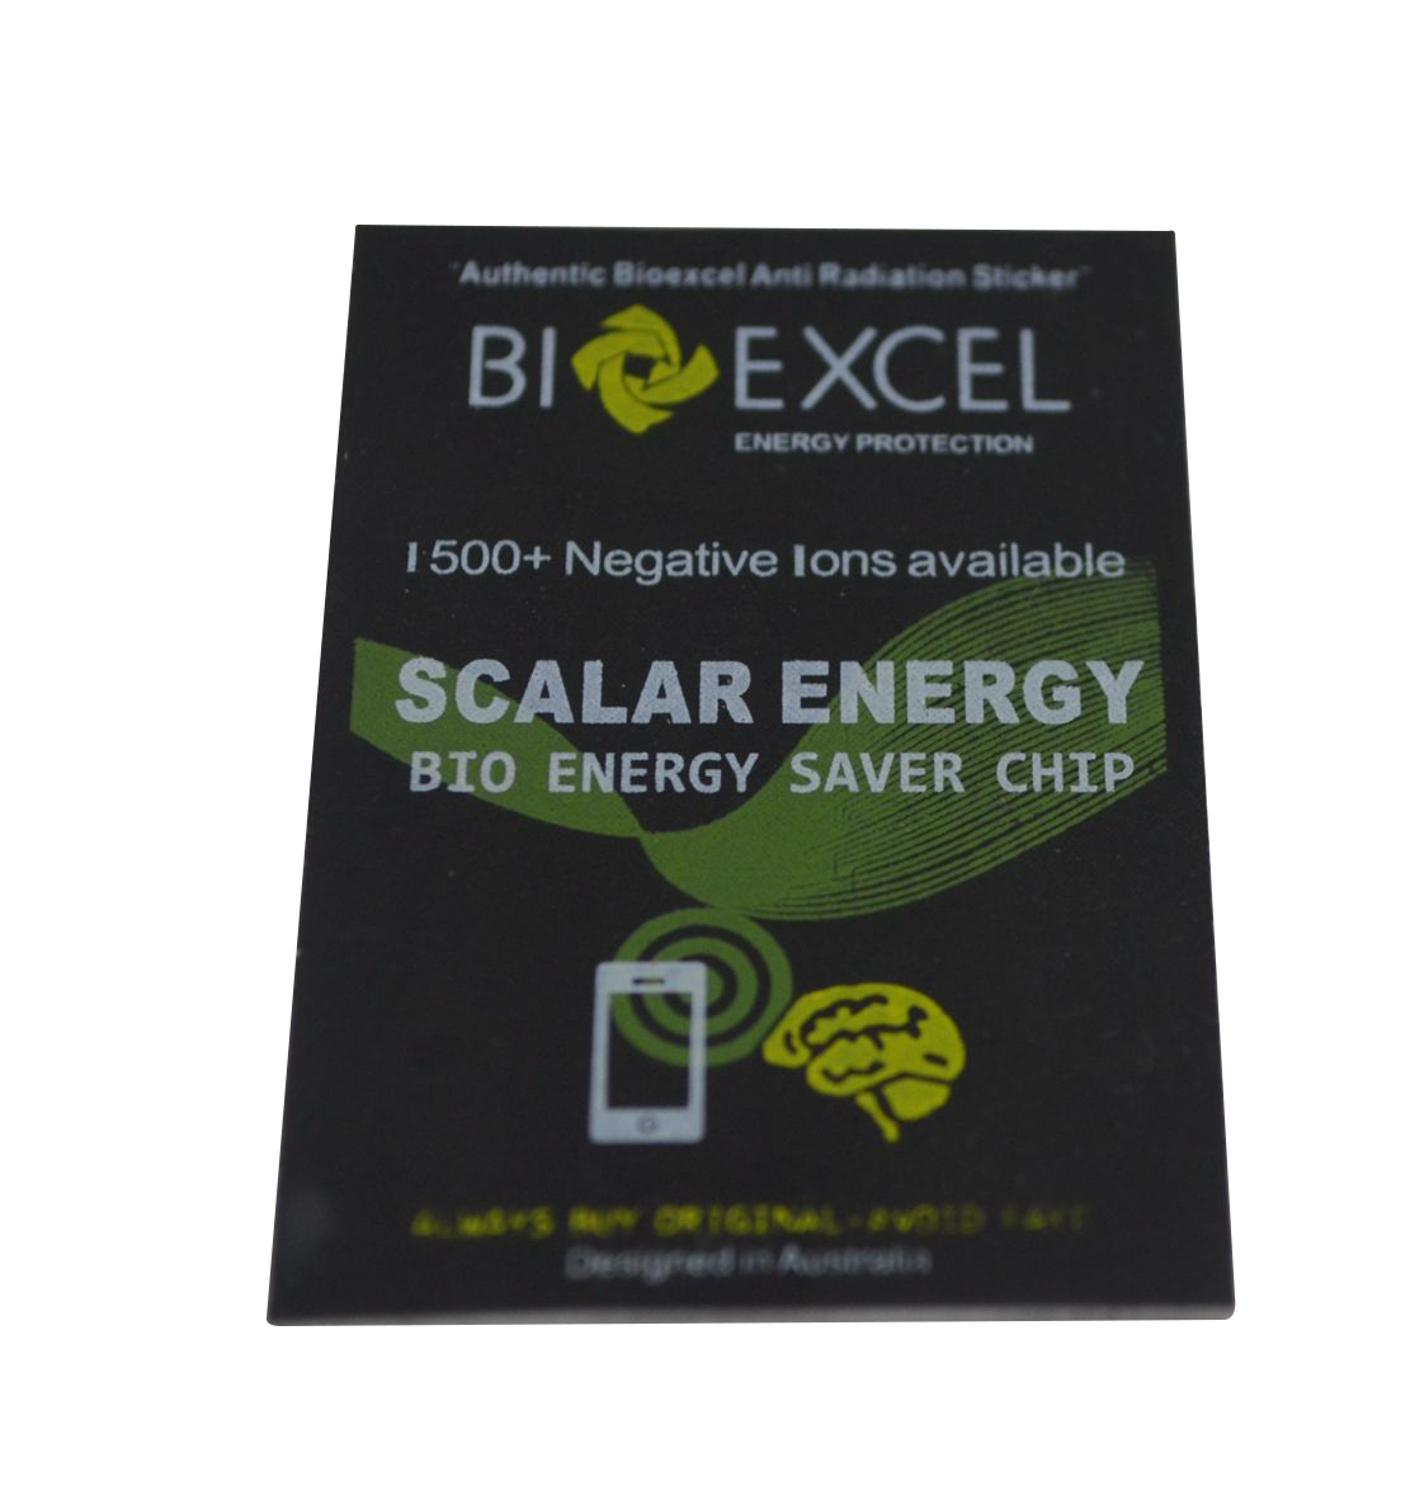 New 100pcs/ lot energy protection bioexcel Anti radiation Sticker For Cell Phone living power corporation energy sticker